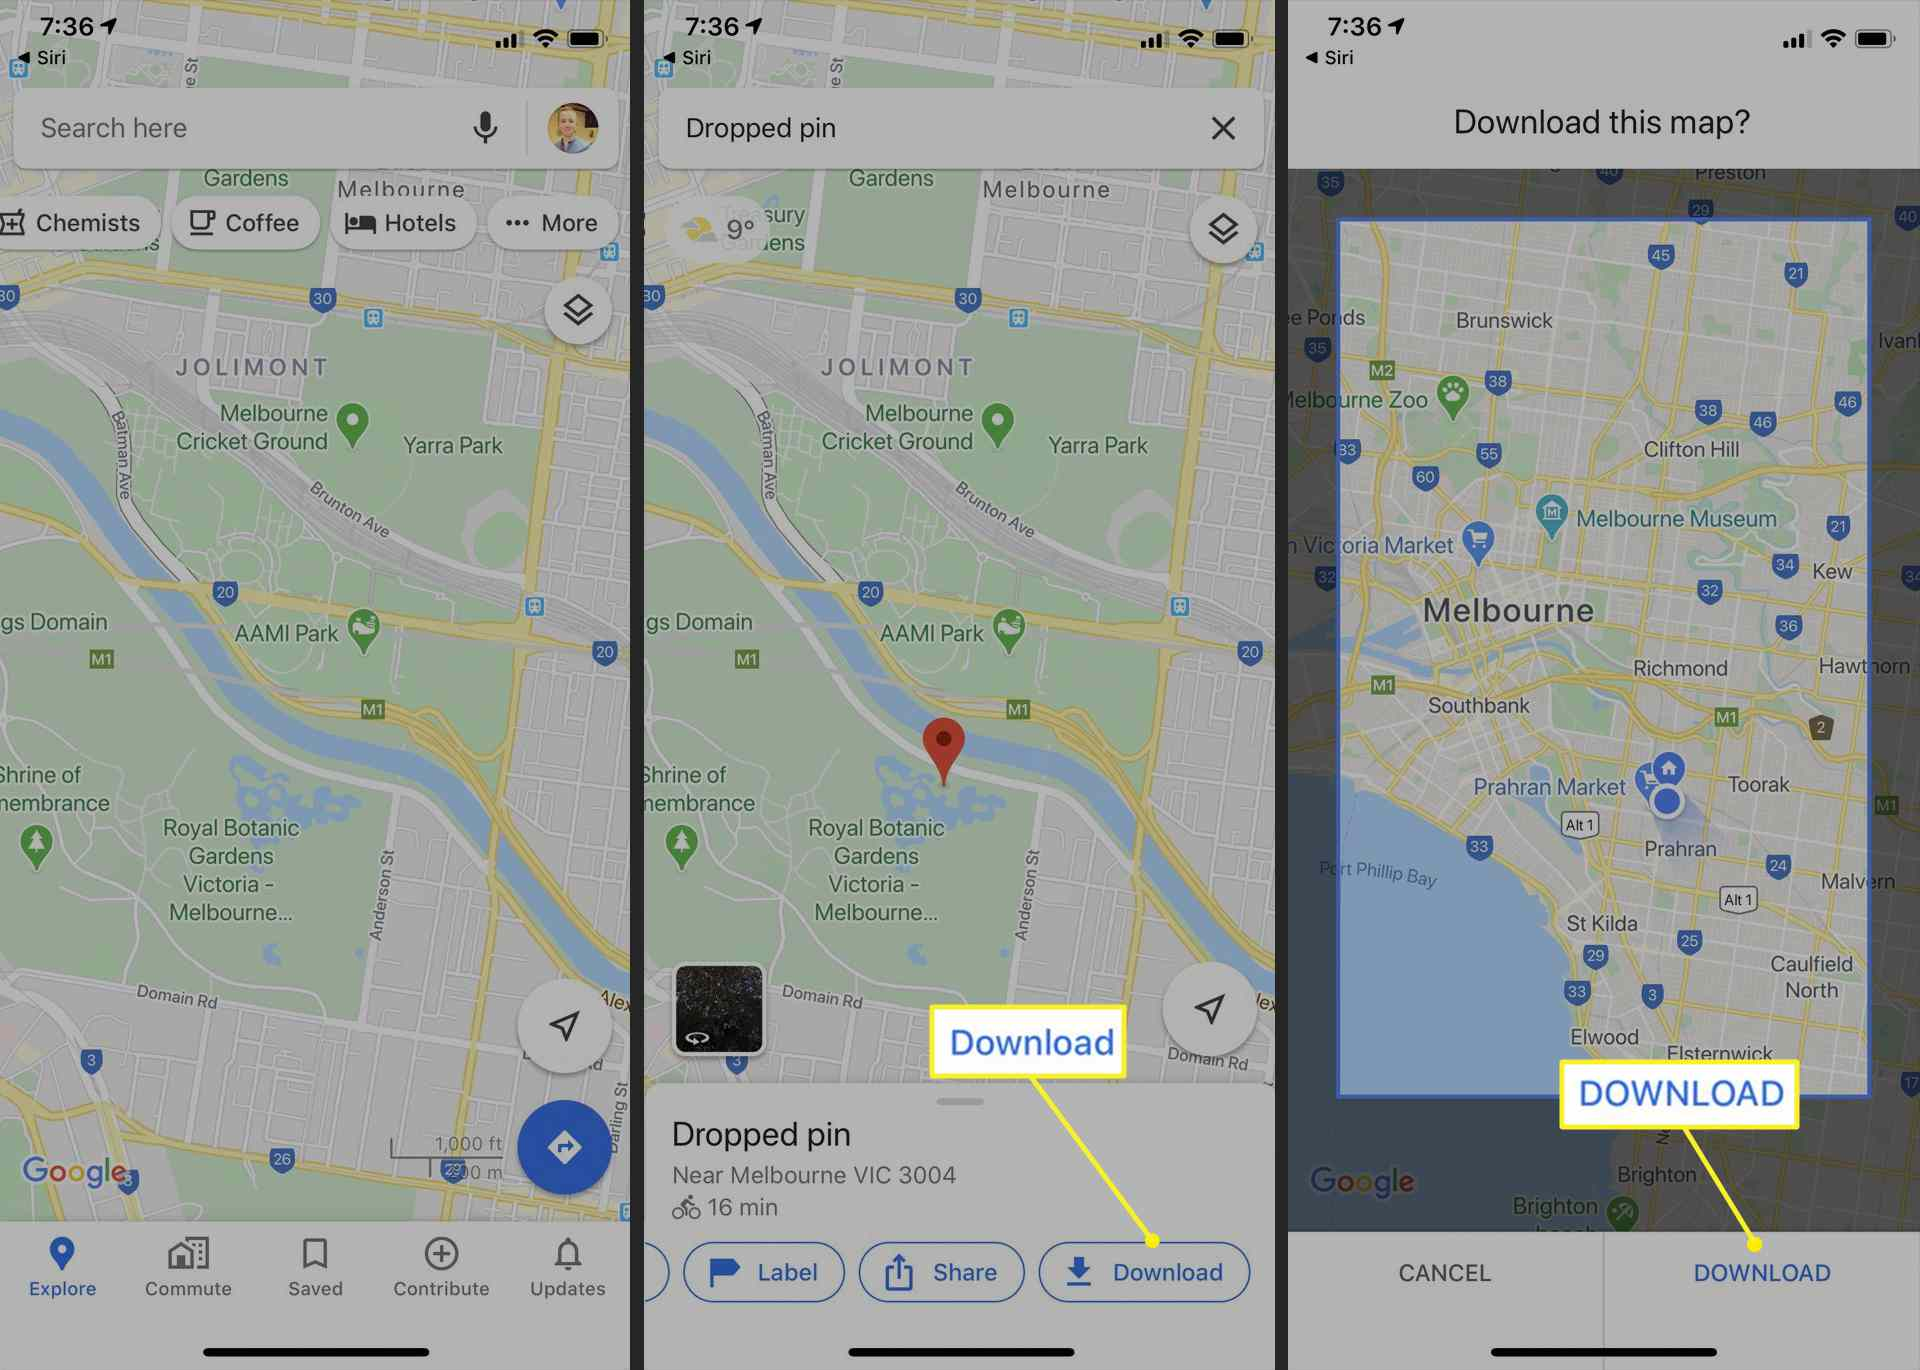 Downloading offline maps in Google Maps on iPhone